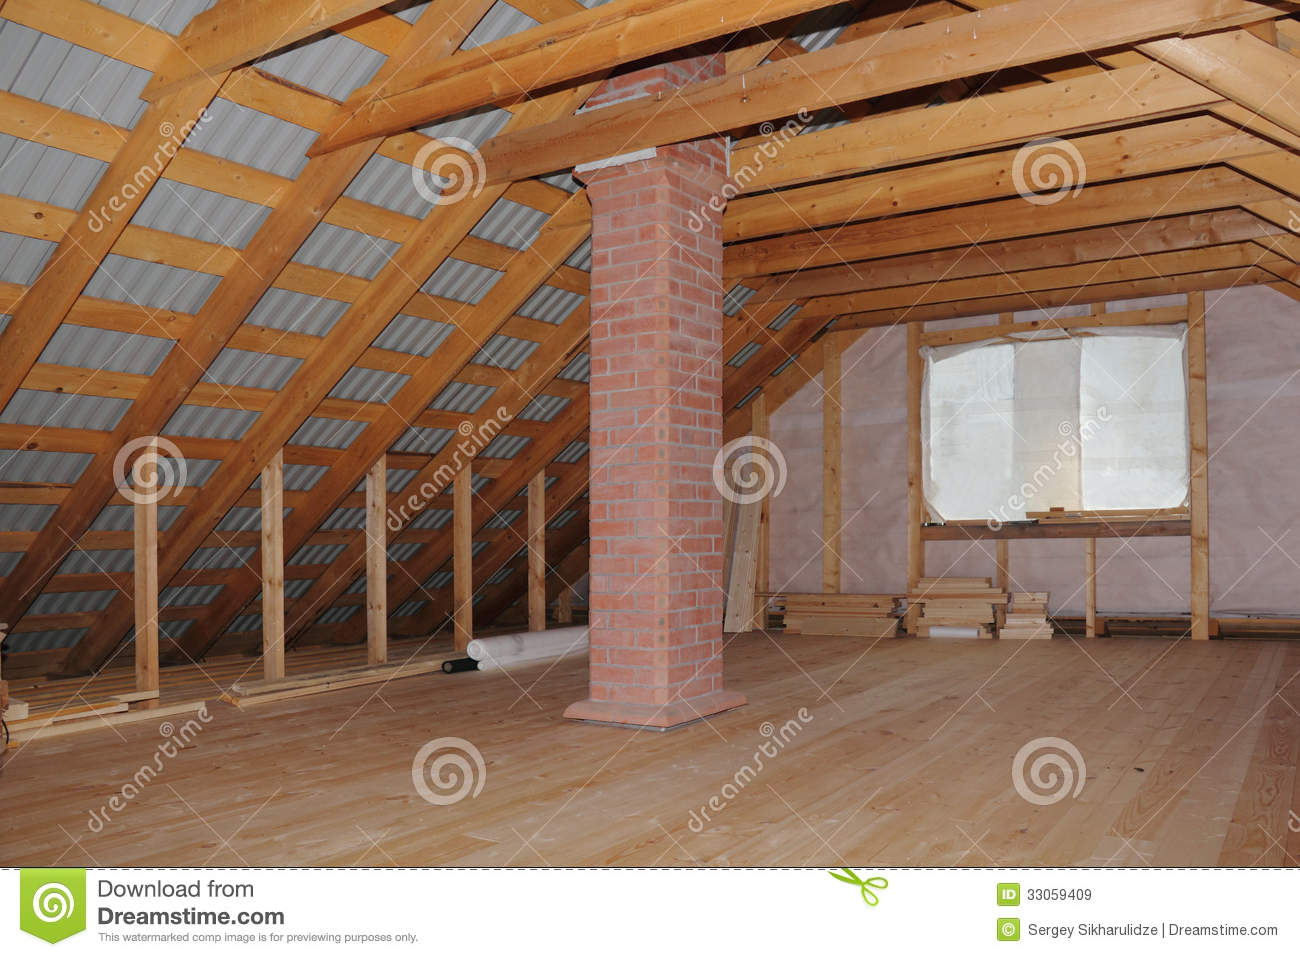 Attic With Chimney In Wooden House Under Construction